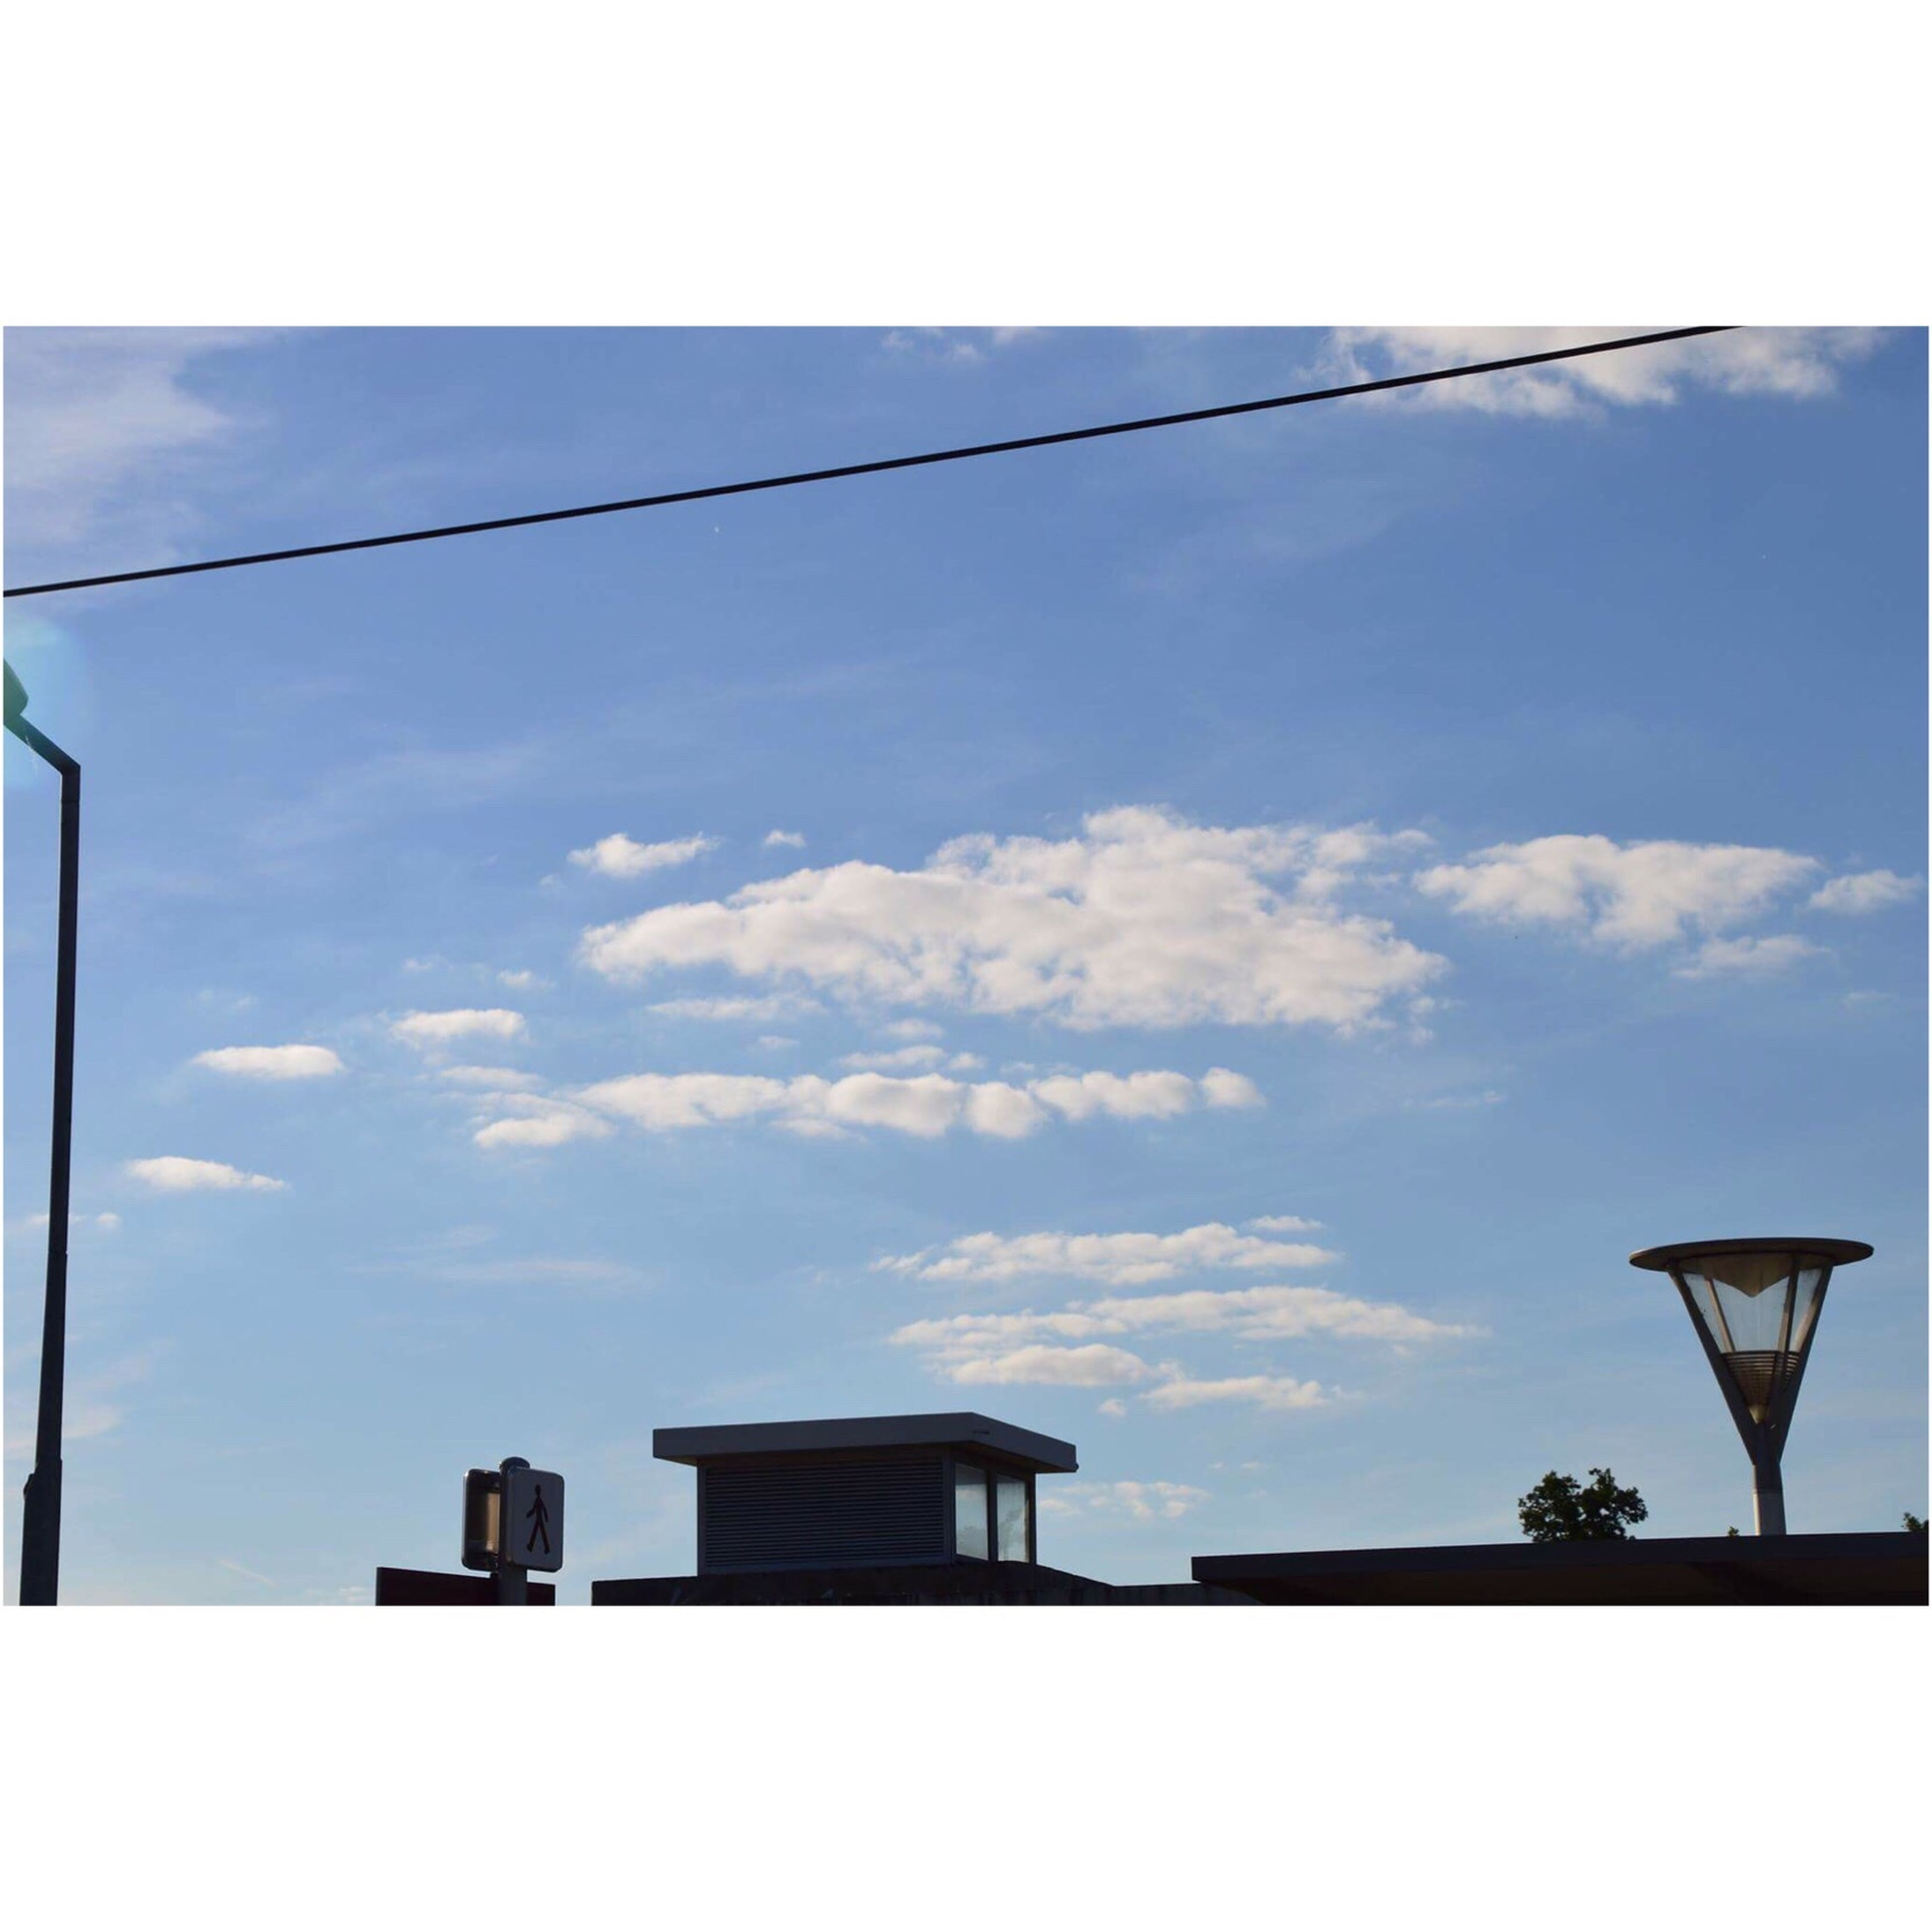 Noisy le sec gare vert galant EyeEm Nature Lover Eye4photography  Built Structure Building Exterior Day Architecture Sky Outdoors Low Angle View No People Water Tower - Storage Tank Nature Clouds And Sky France Gare Beauty In Nature